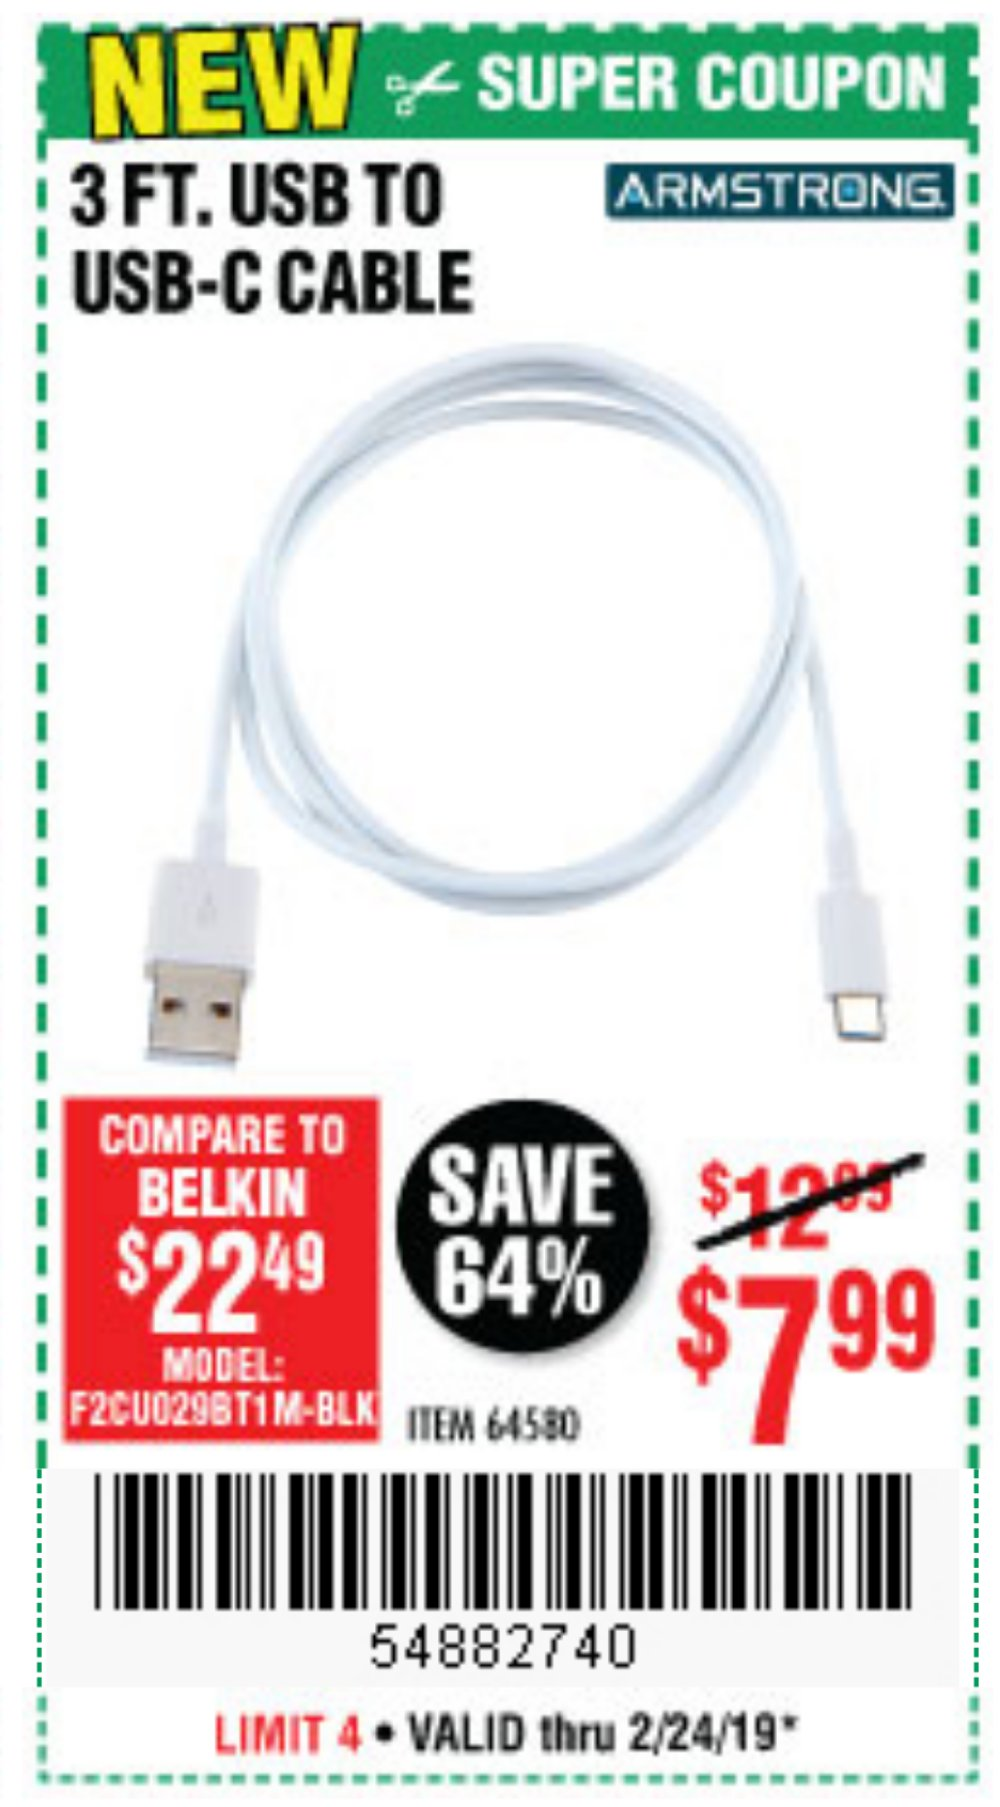 Harbor Freight Coupon, HF Coupons - USB to USB-C Cable